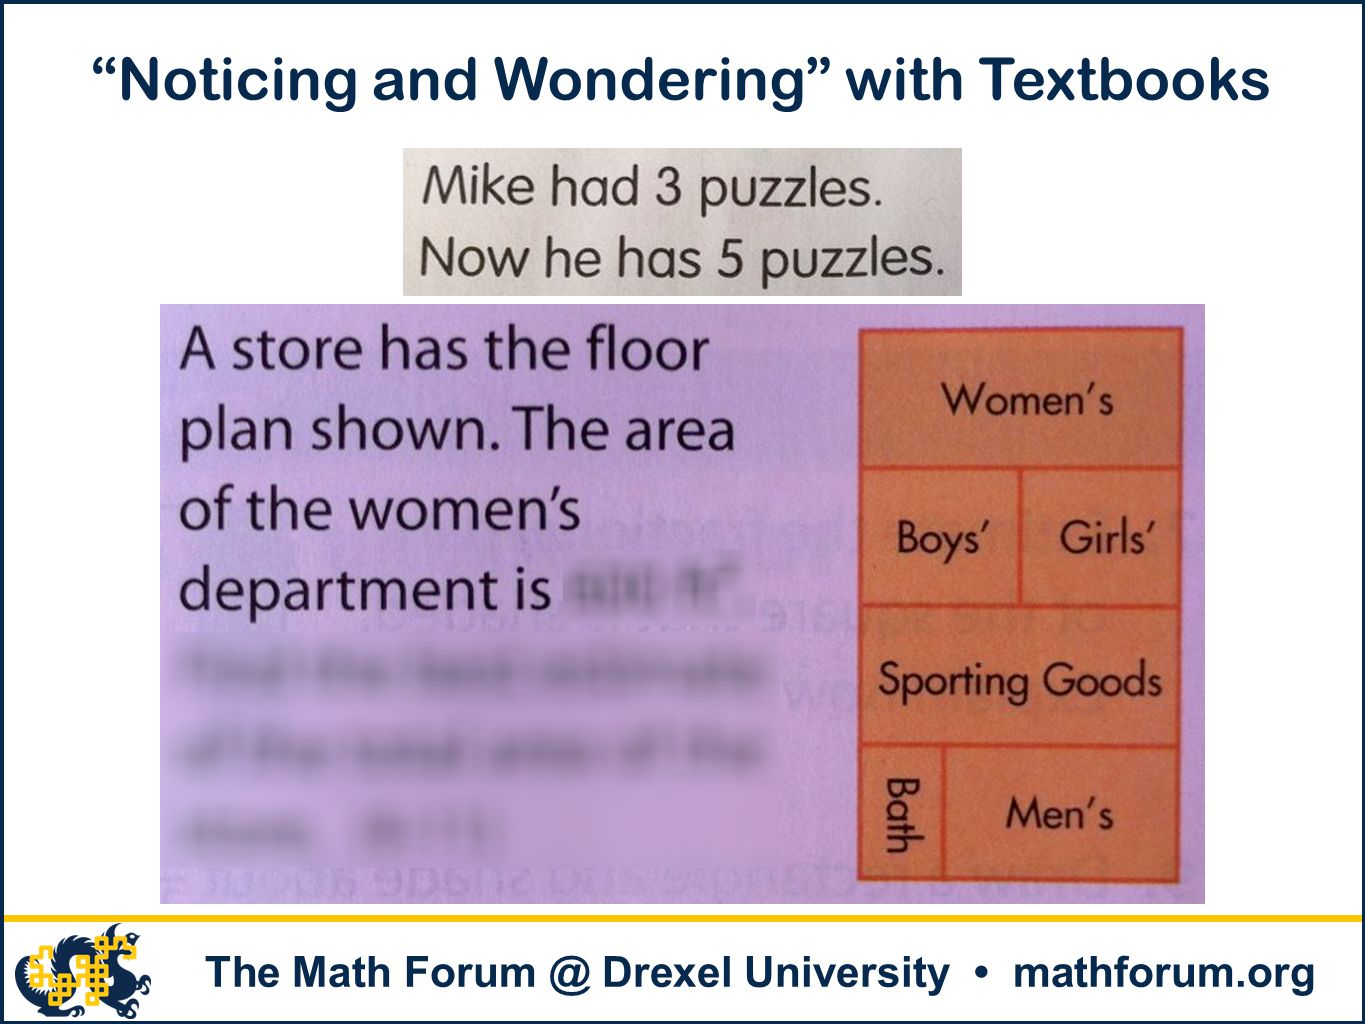 Noticing and Wondering with Textbooks